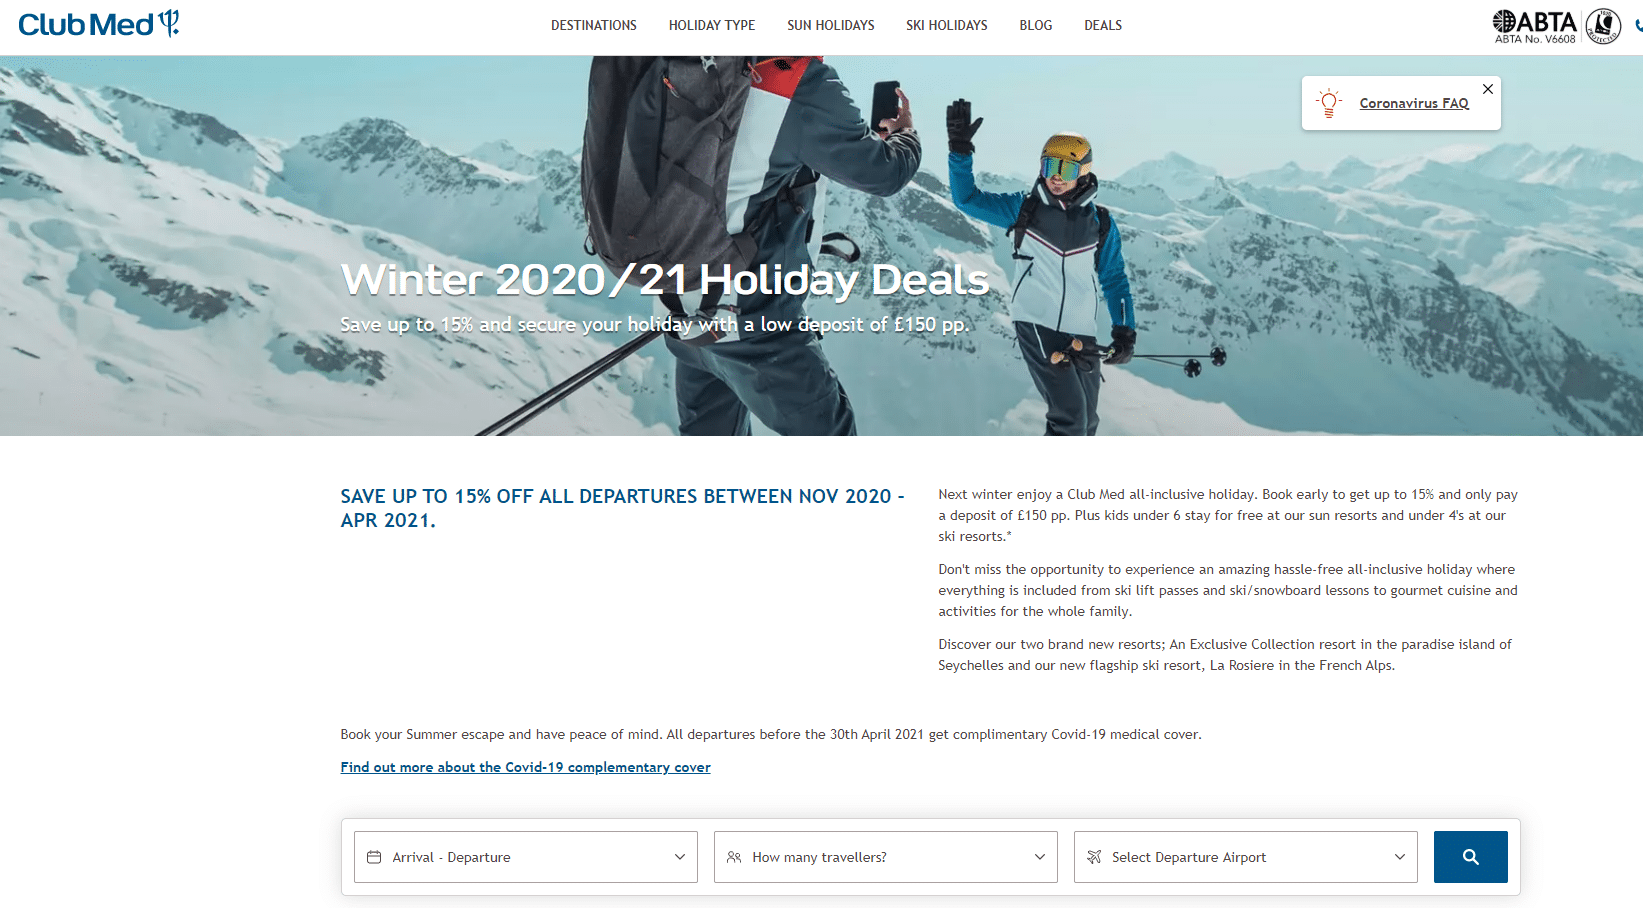 Club Med offer